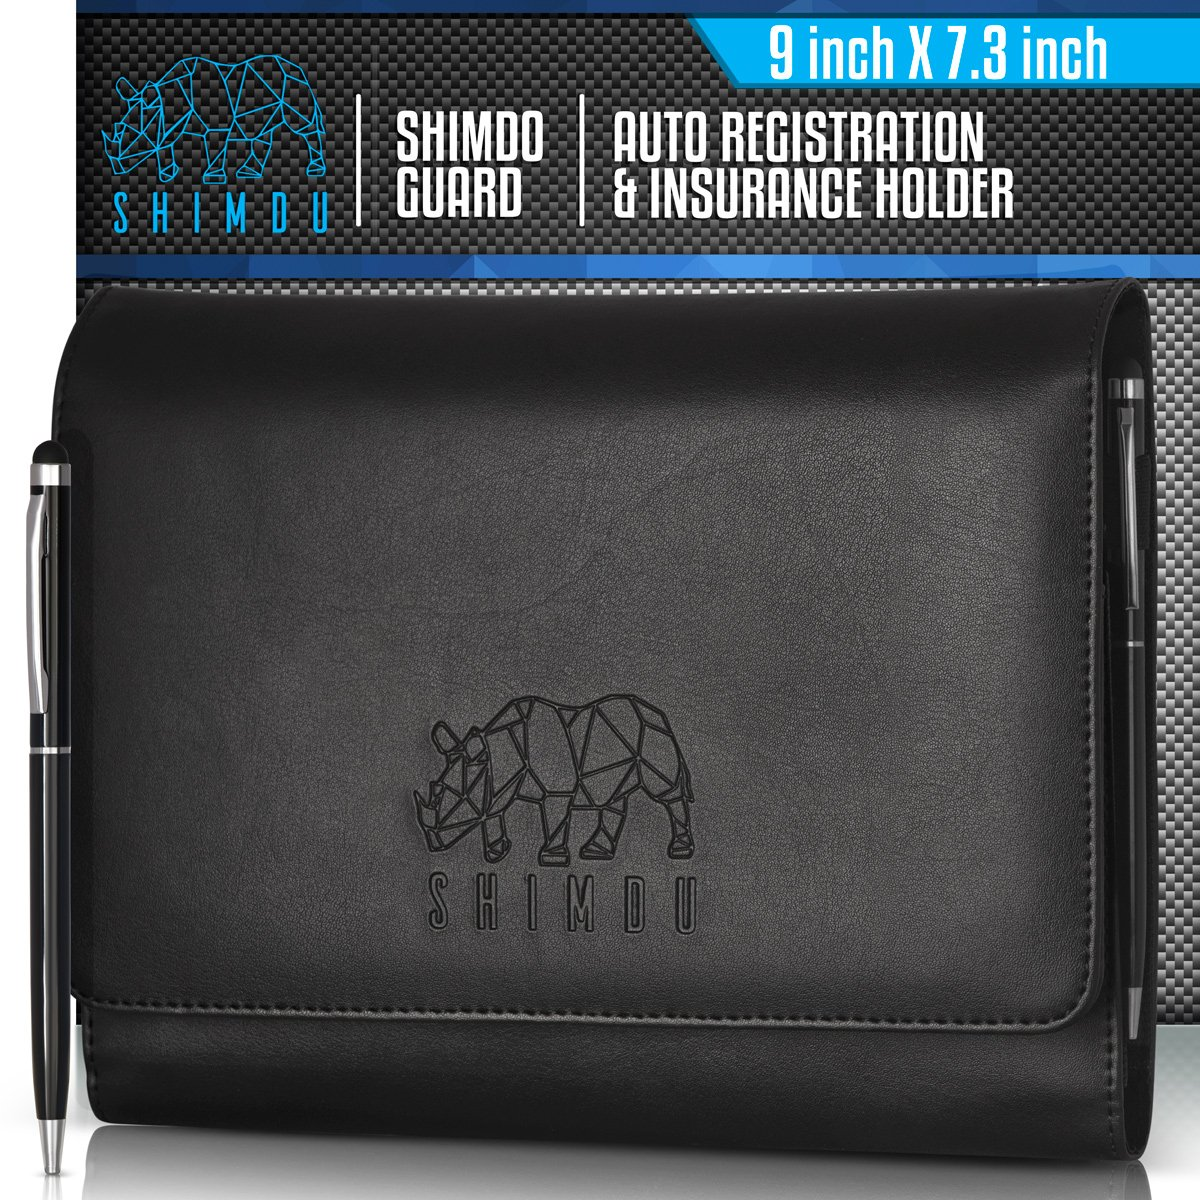 SHIMDU Car Registration Card And Insurance Holder, Glovebox Organizer- Keep Your Important Documents Safe, Protected And Within Arm' s Reach, Made Of Premium Black PU Leather-Include 0.7 mm Pen AL-BL1